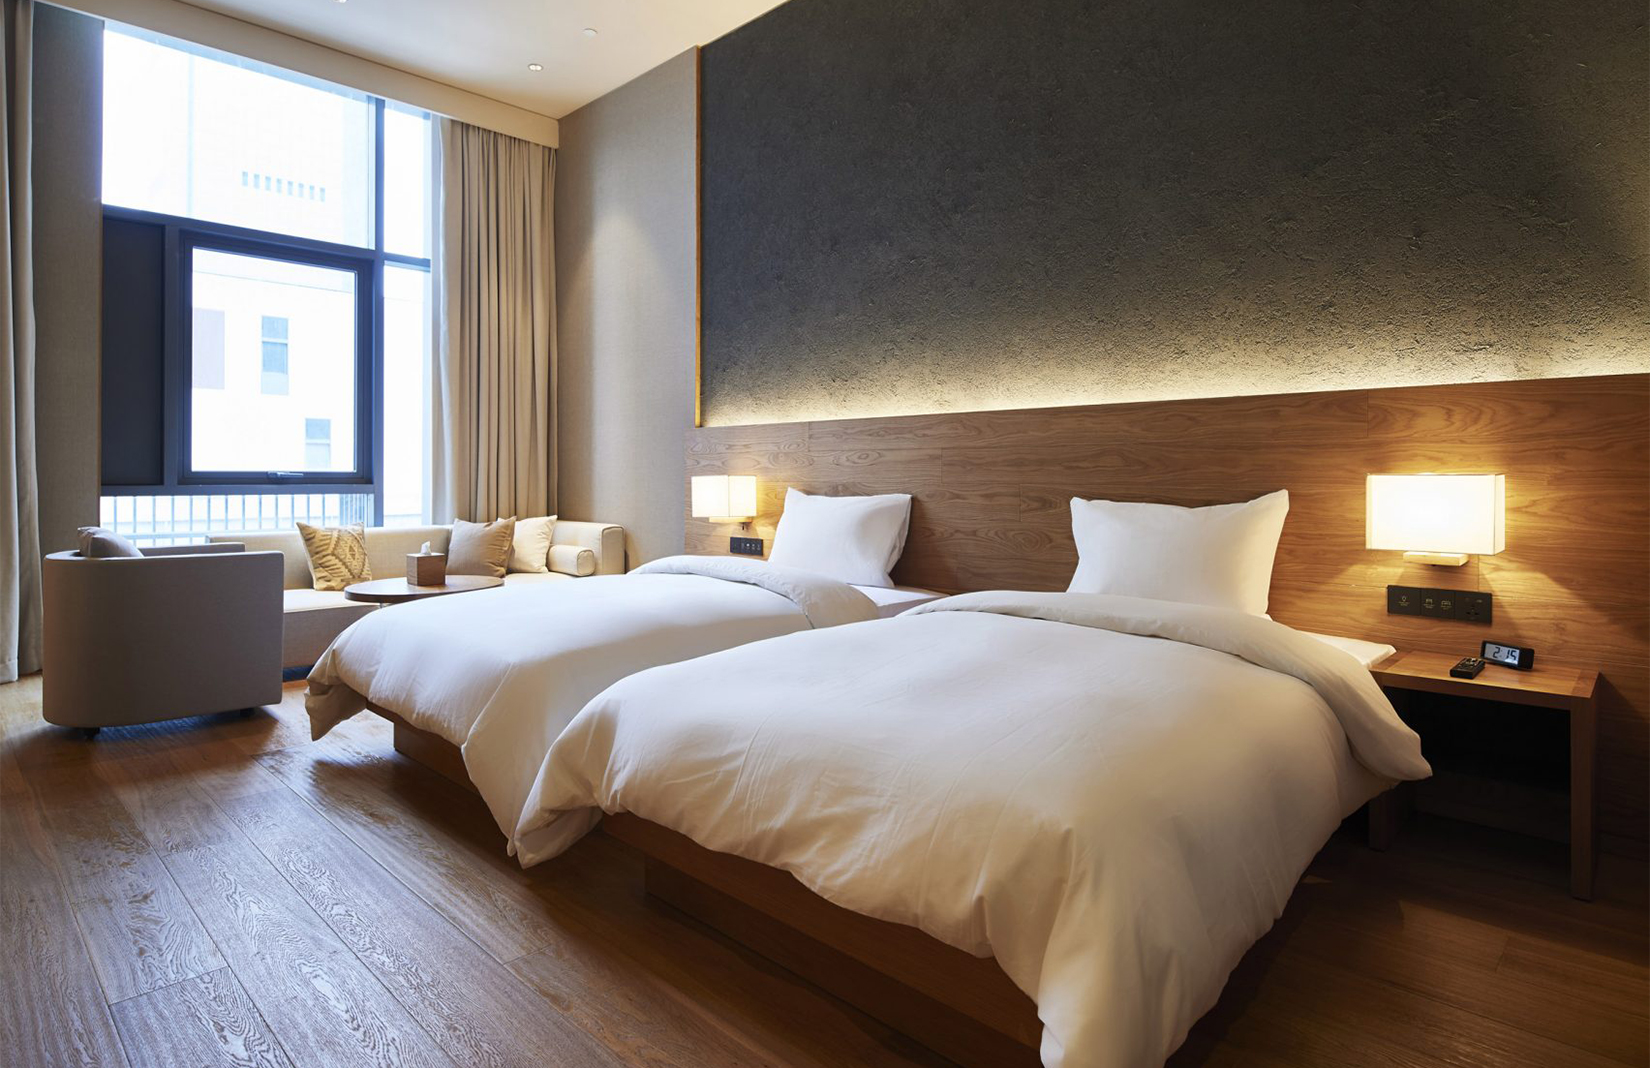 Home Architecture And Design Trends Muji Hotel In Shenzhen Has Anti Gorgeous Interiors